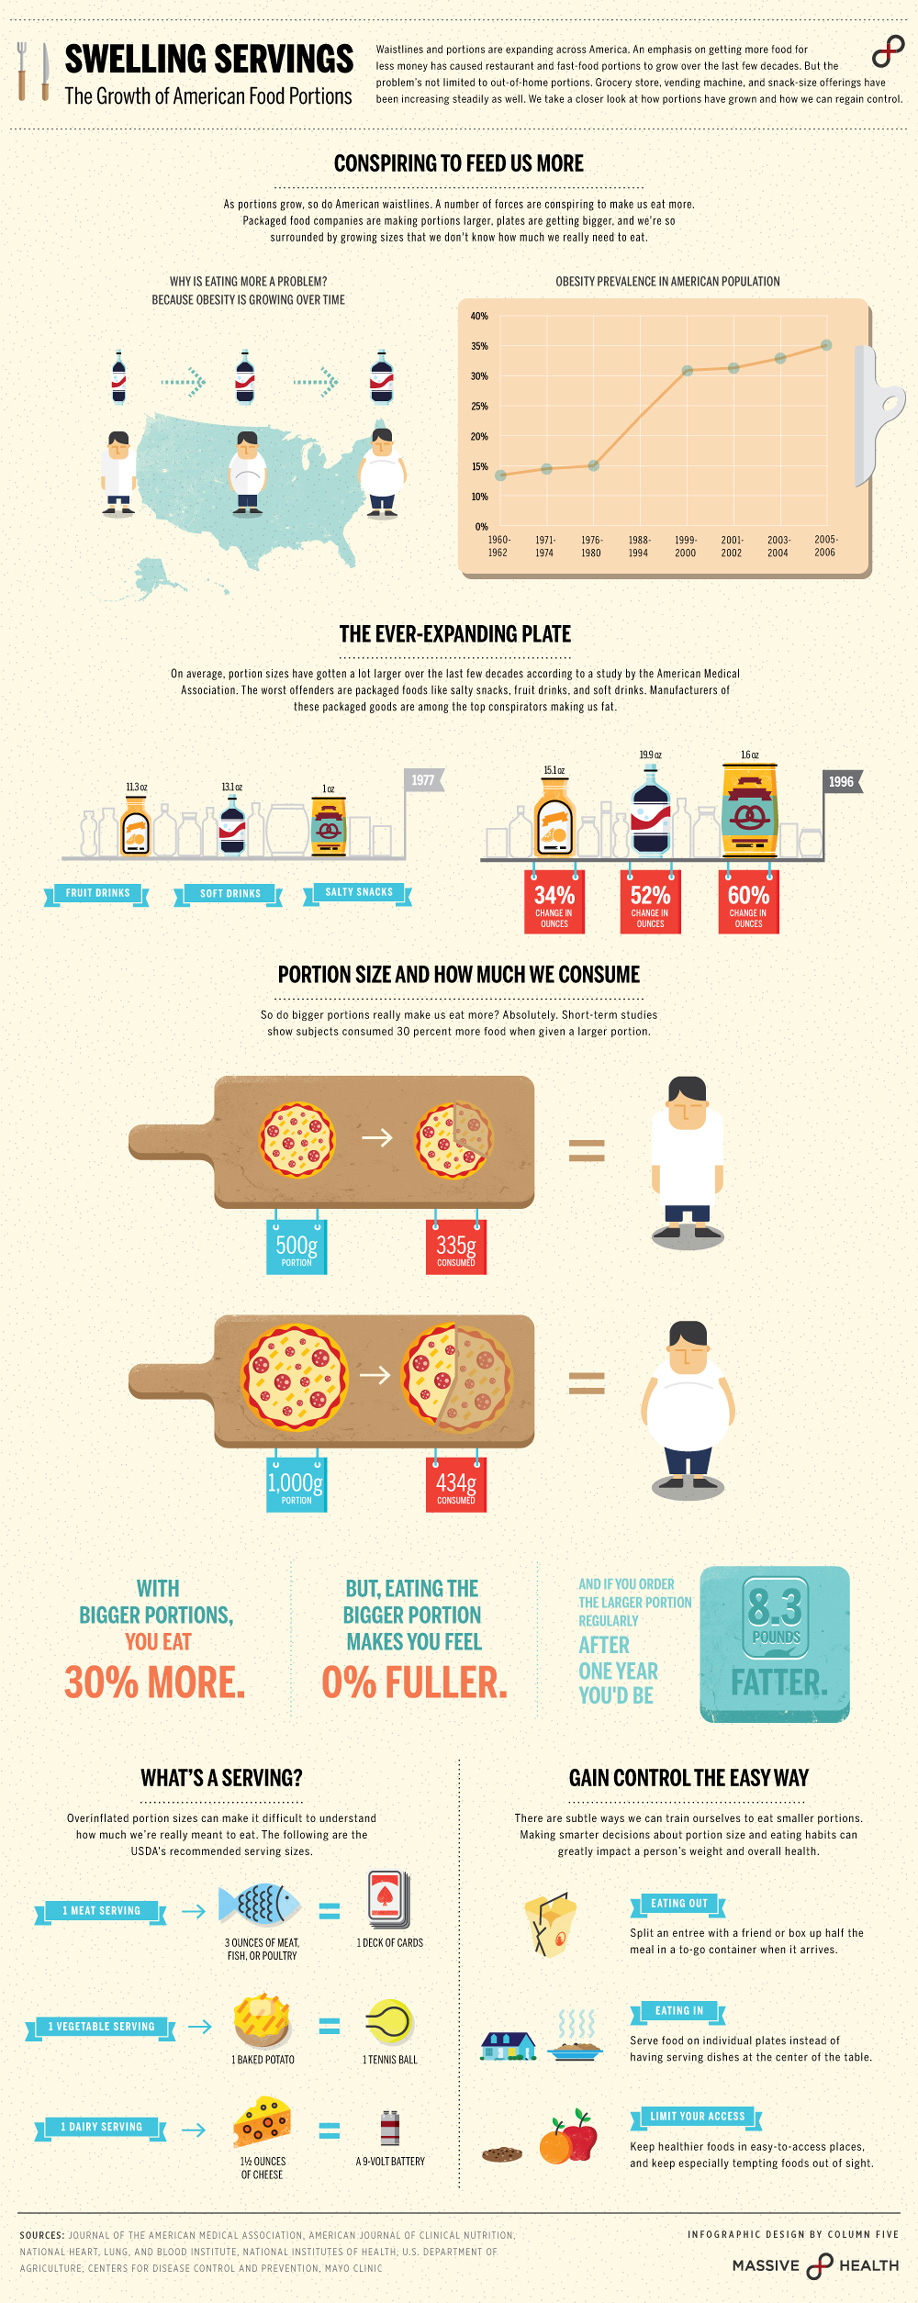 Infographic: Swelling Servings: The Growth of American Food Portions